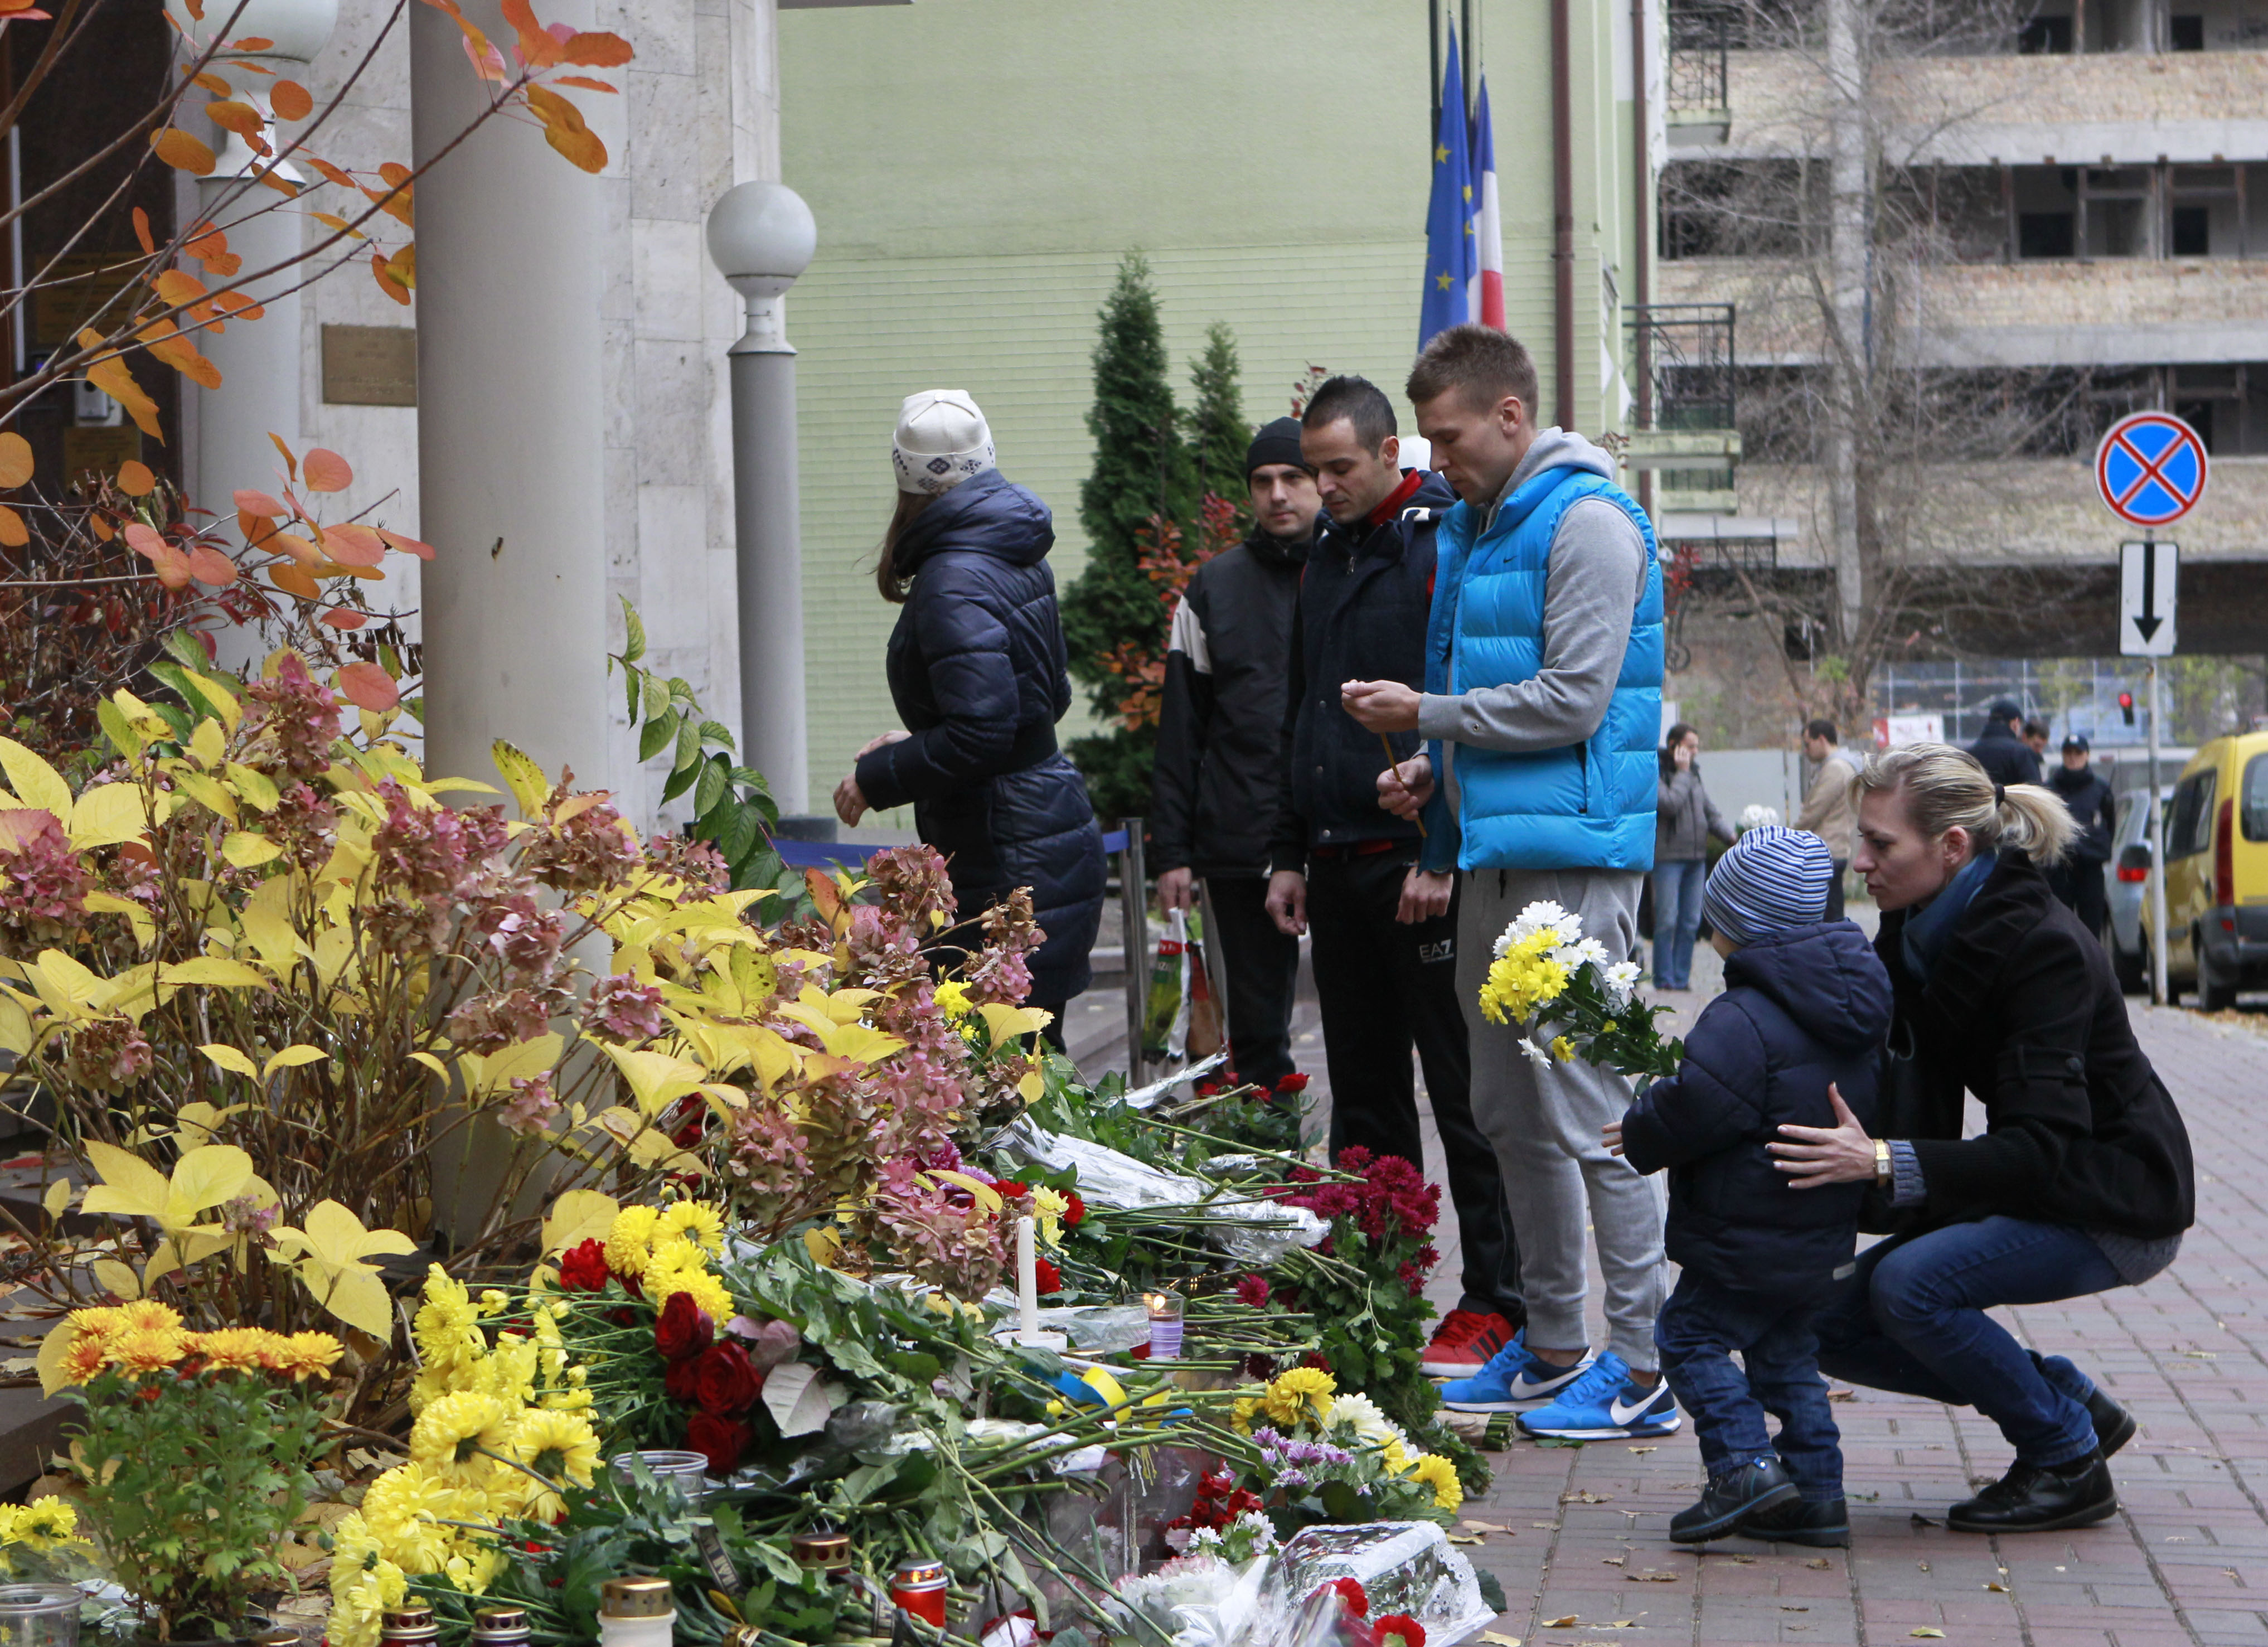 People lay flowers in front of the French Embassy in Kiev, Ukraine on Nov. 14, 2015.